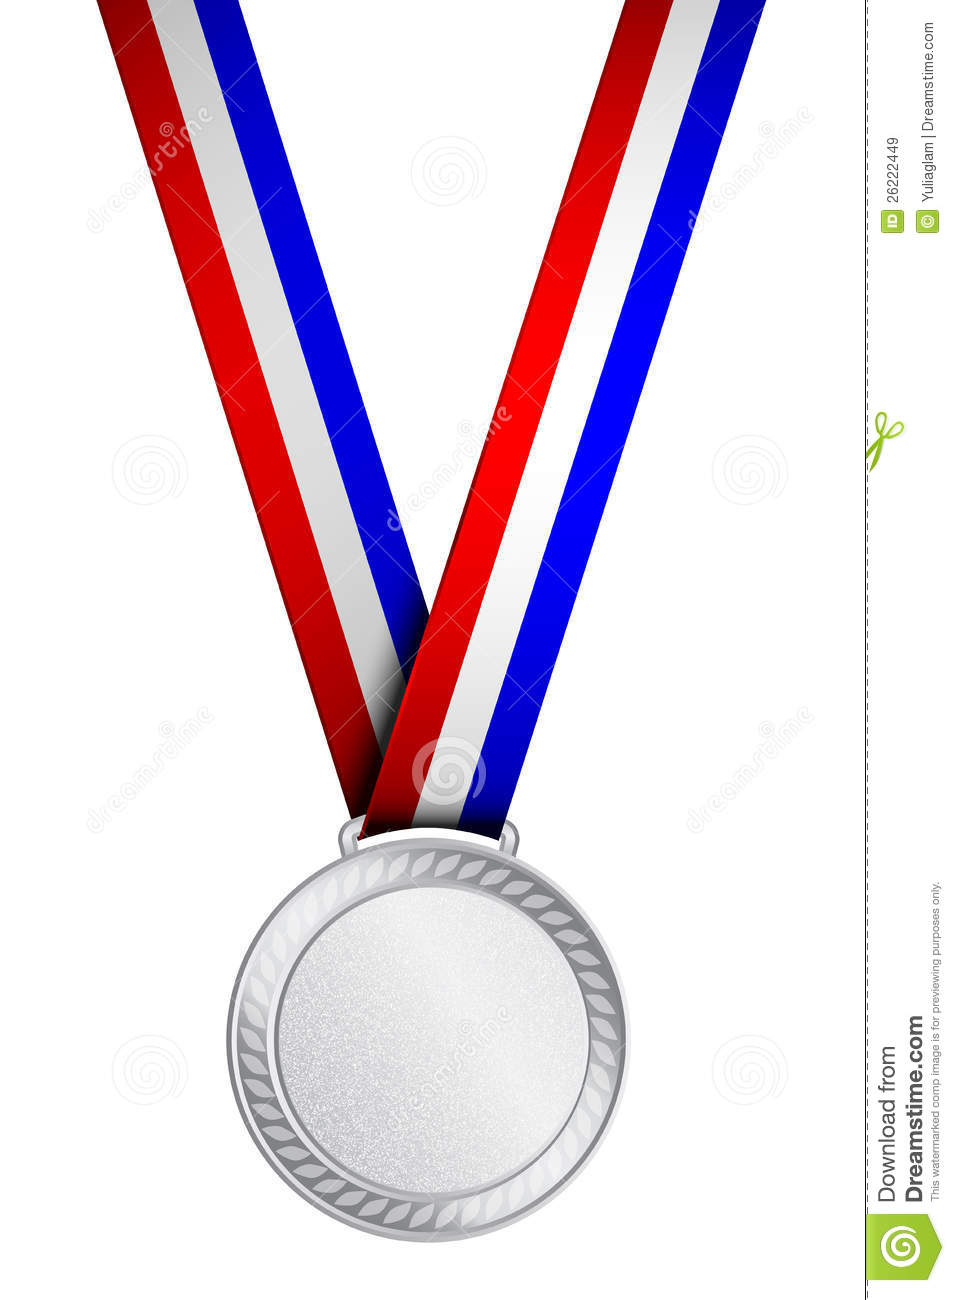 Free Clipart Of Medals